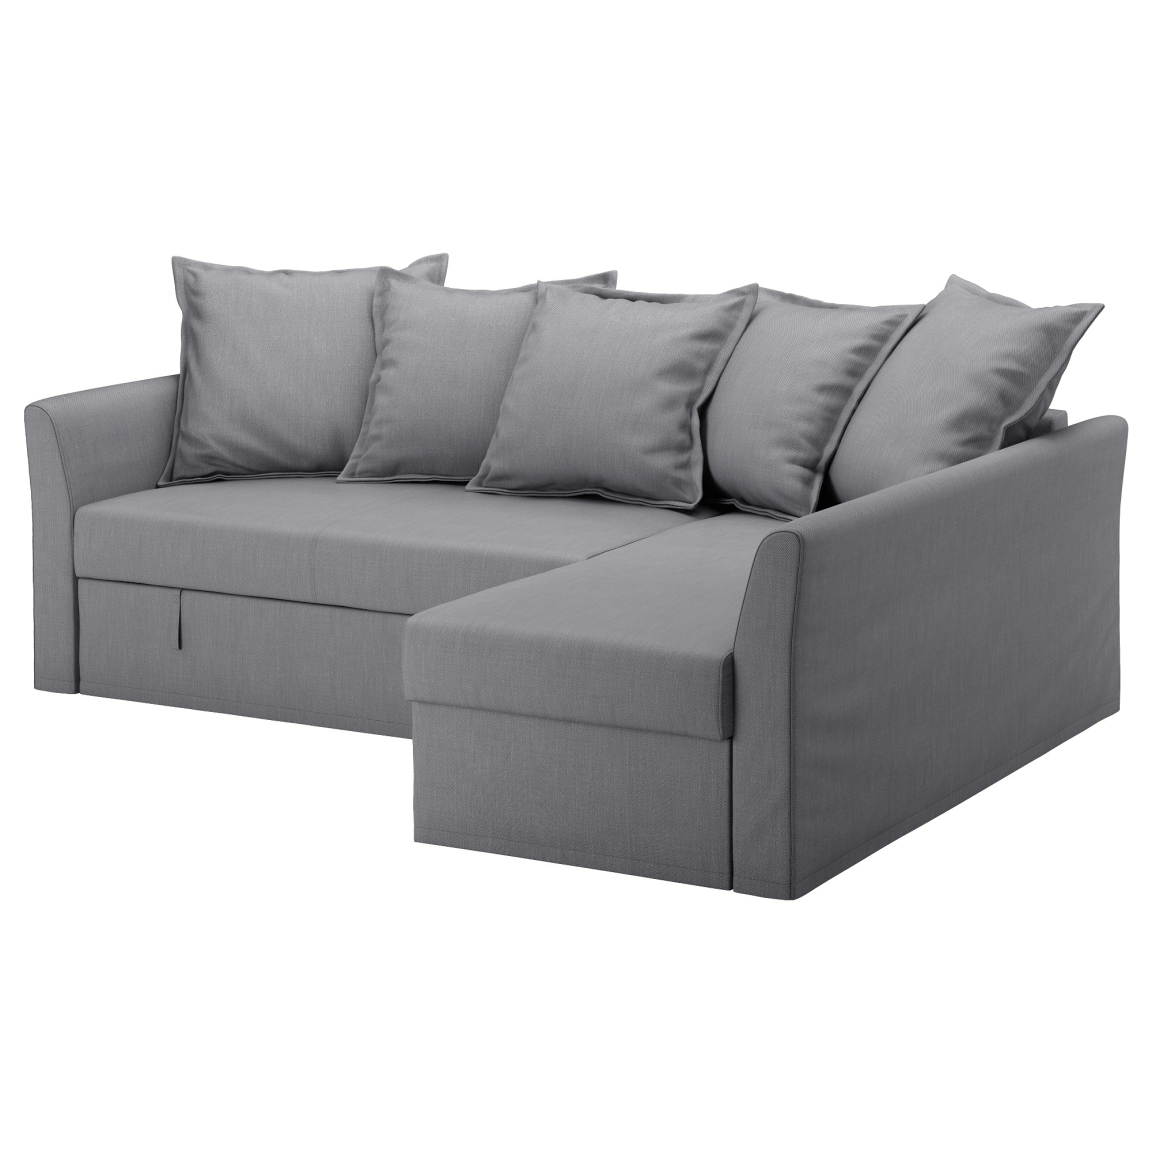 couches the rv move rose slipcovers in sew furniture couch for on